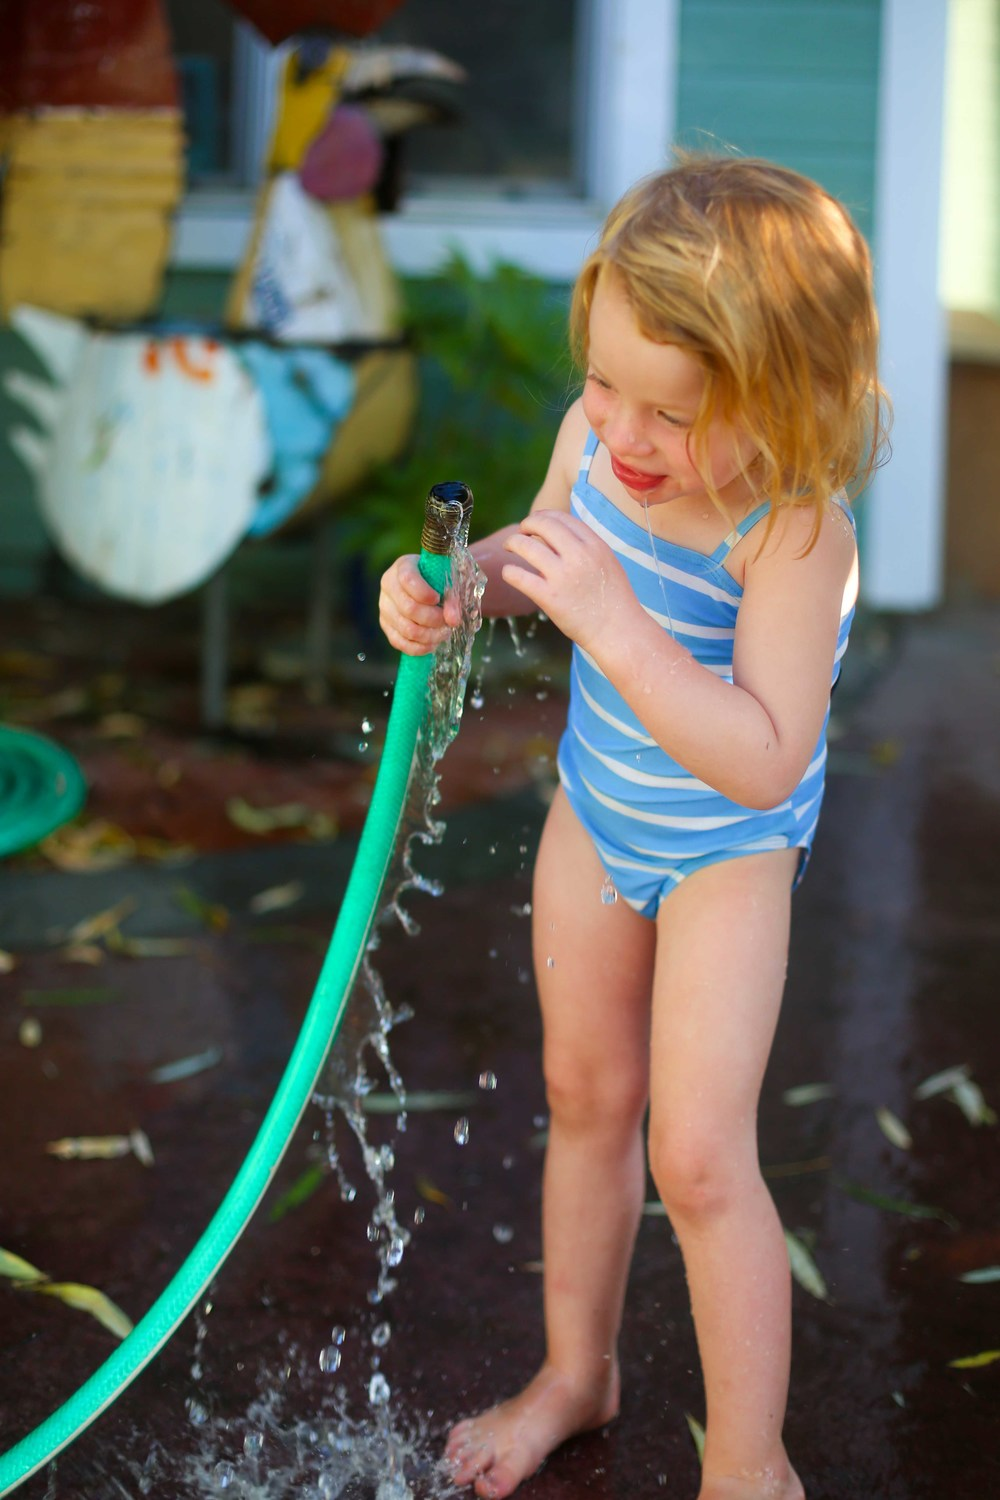 Water and Hose Fun-38.jpg